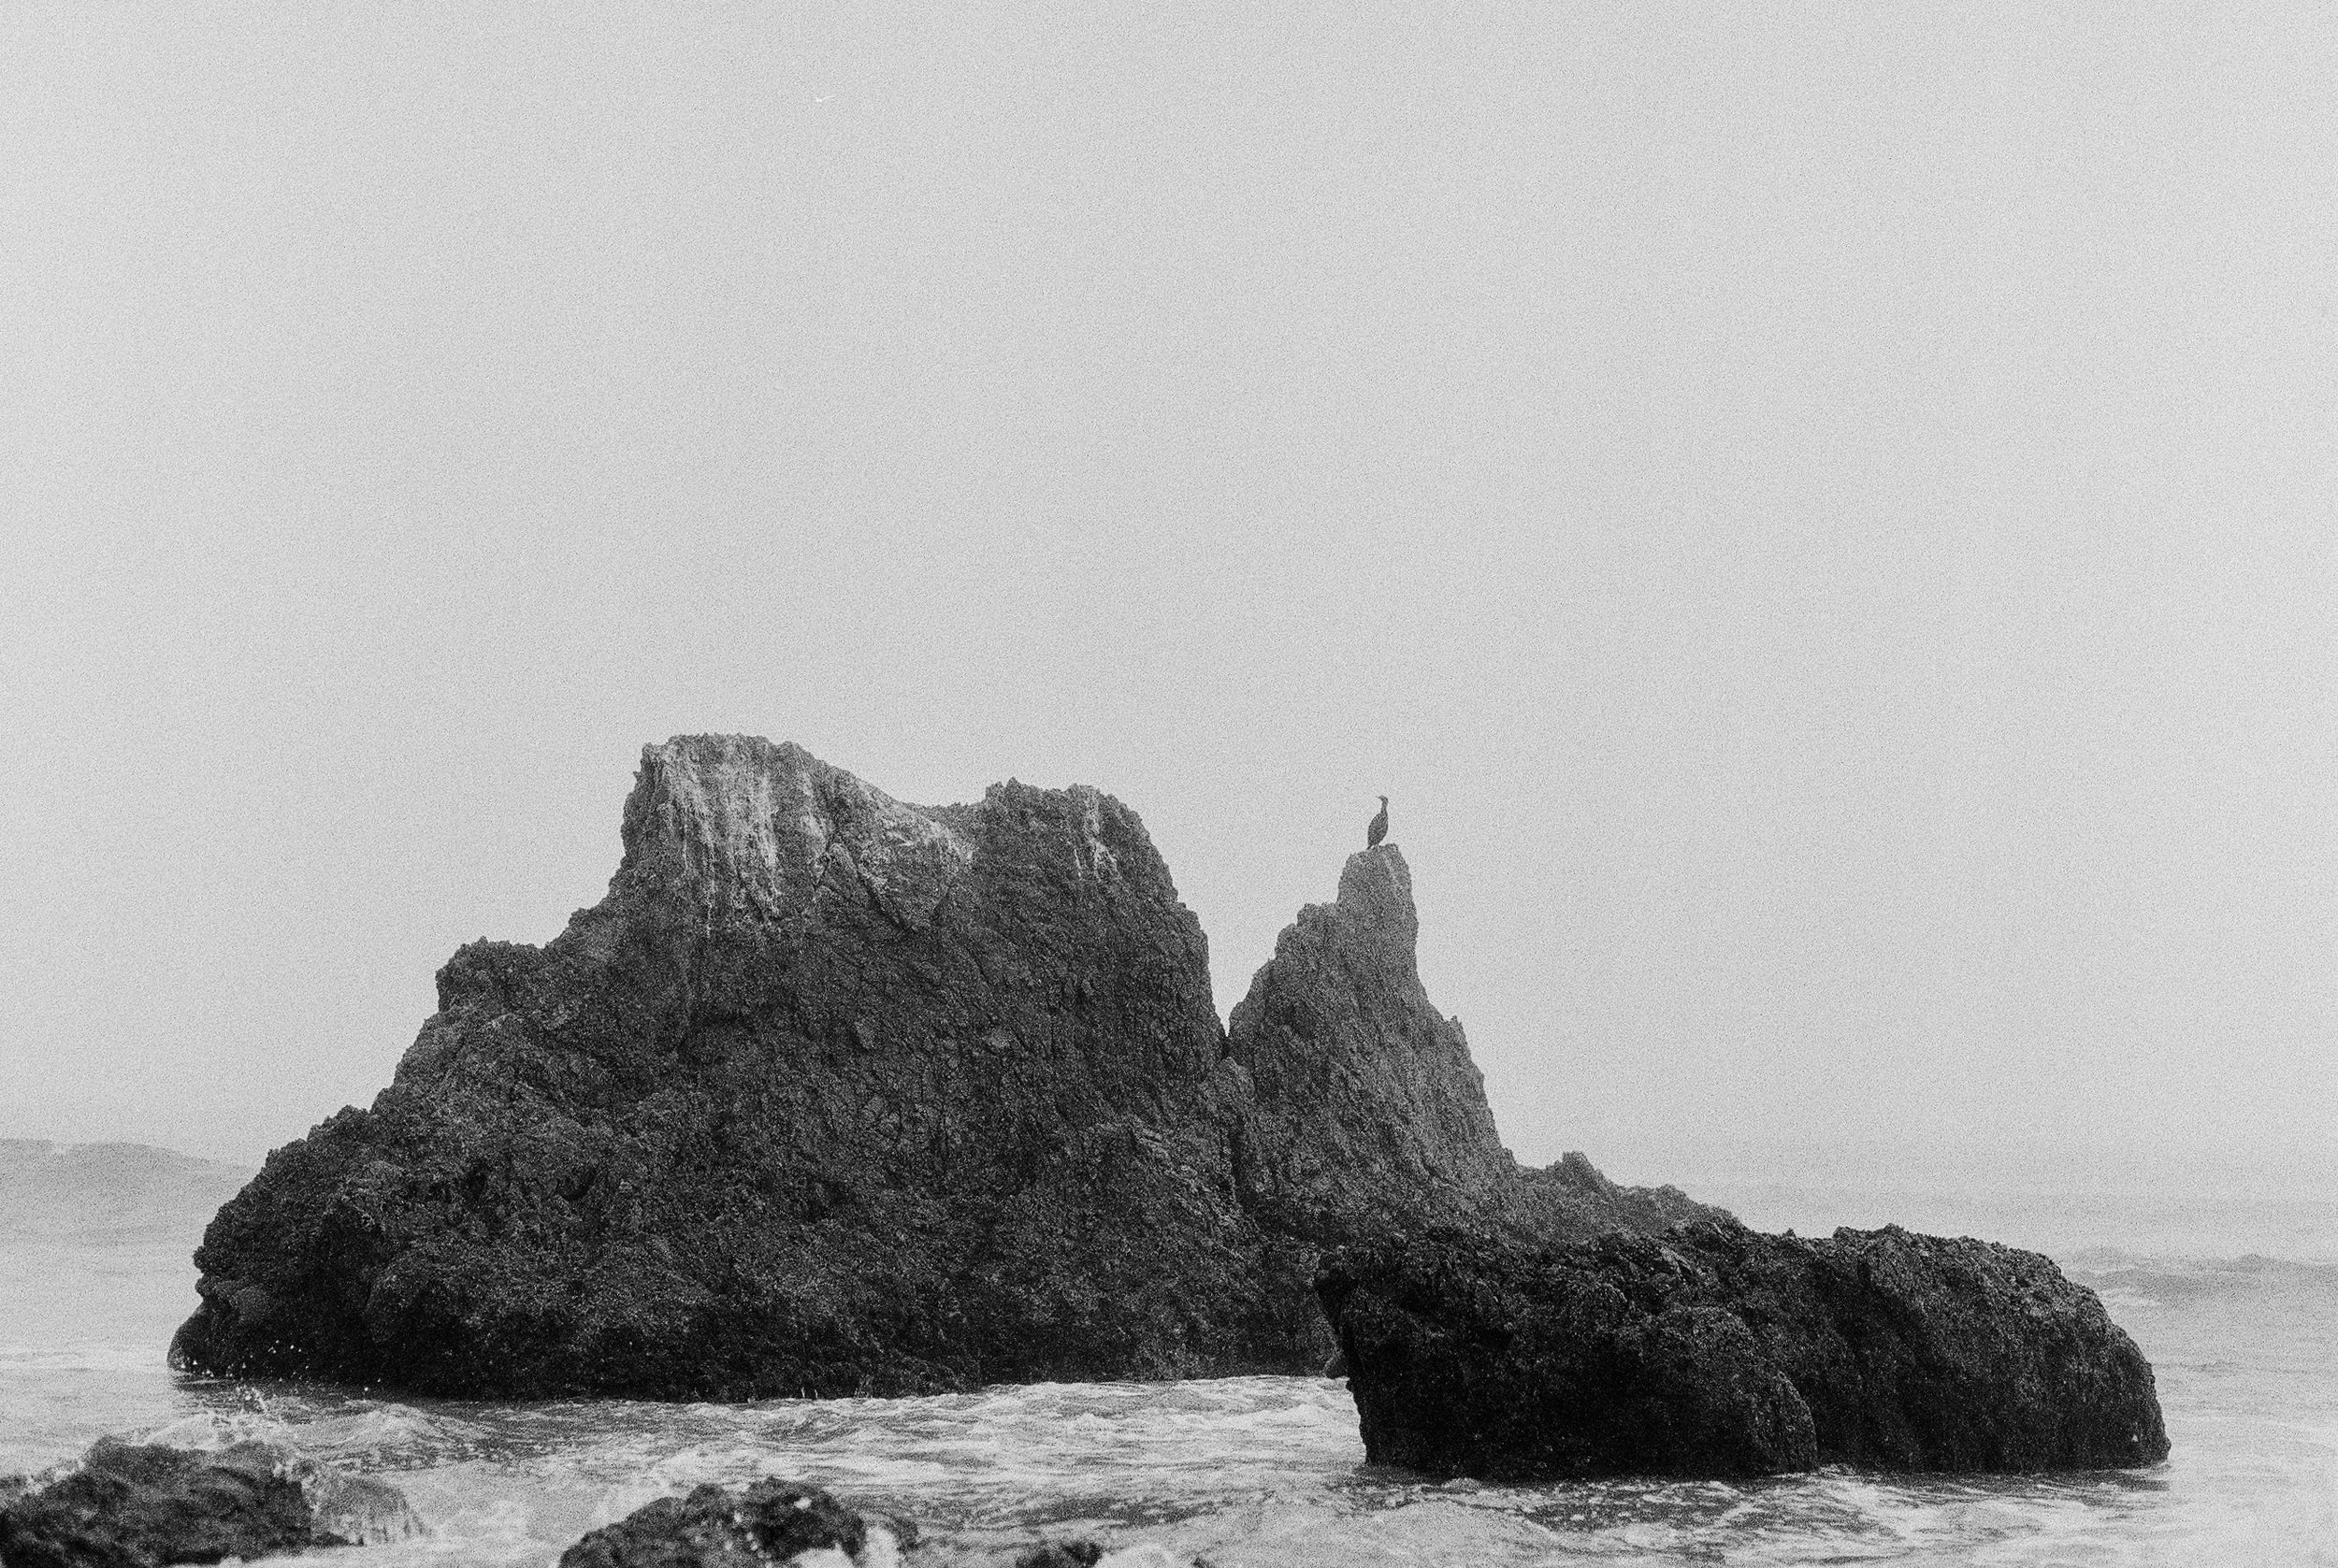 Fine art prints - for the home    For the adventurous